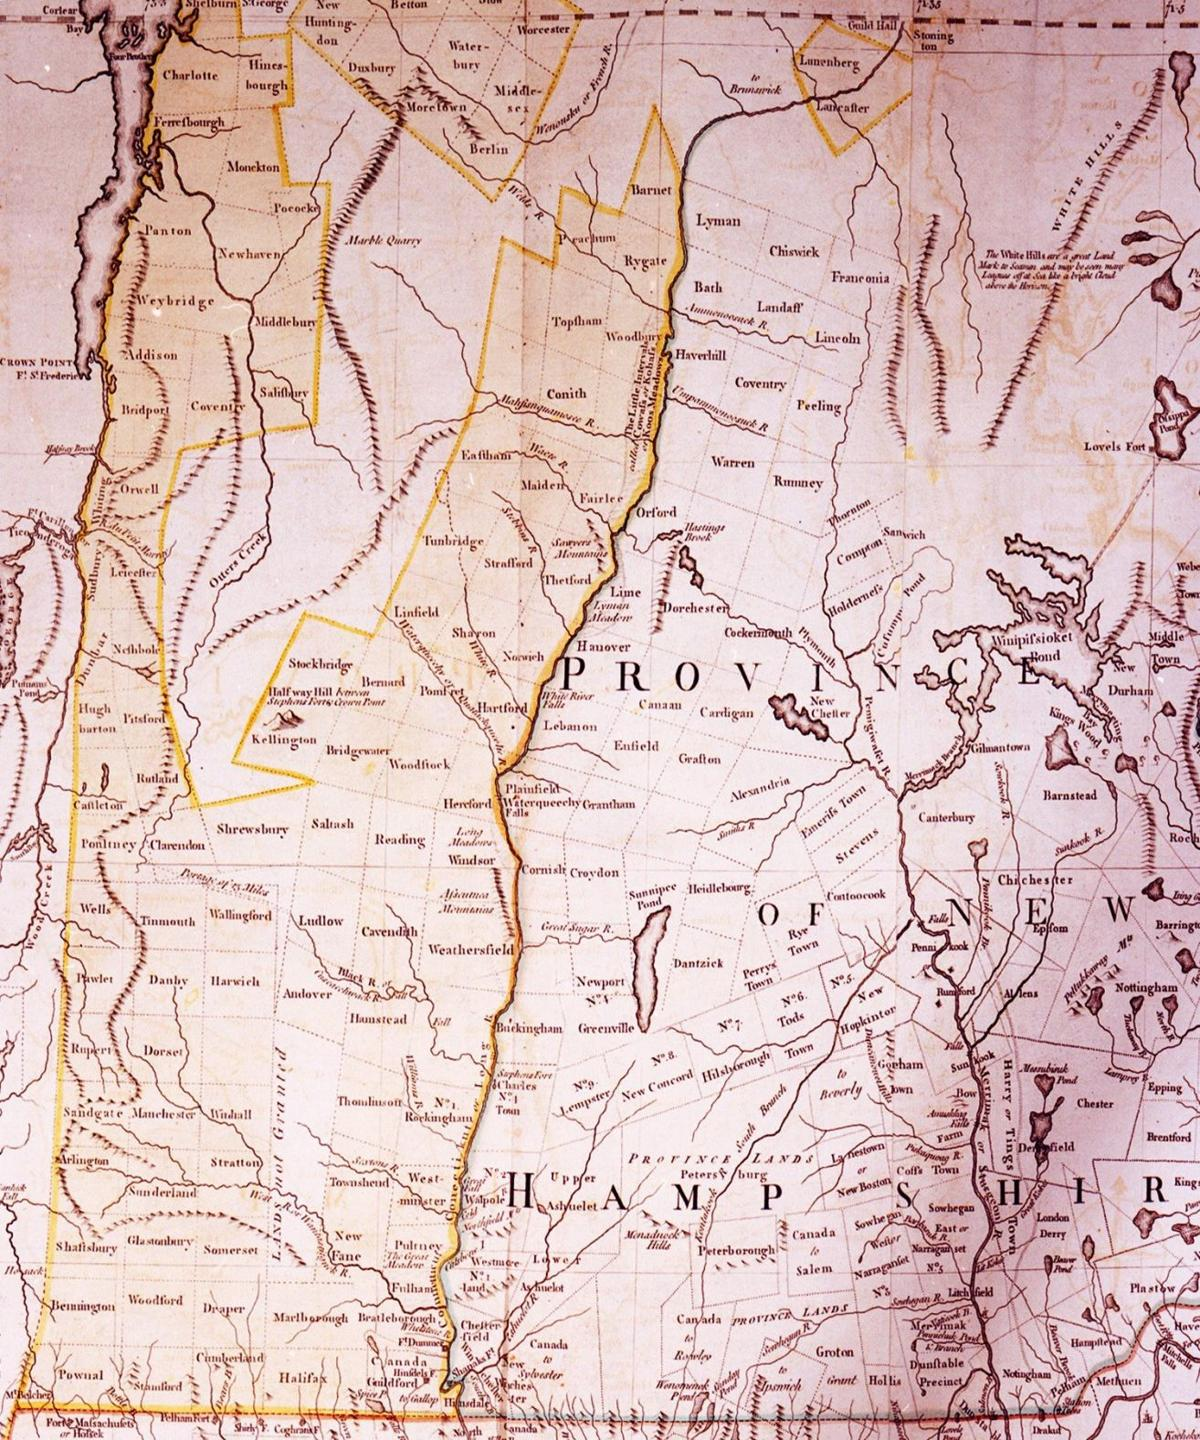 Map Of New York And Vermont.Neighborhood Feud Vermont New Hampshire And New York